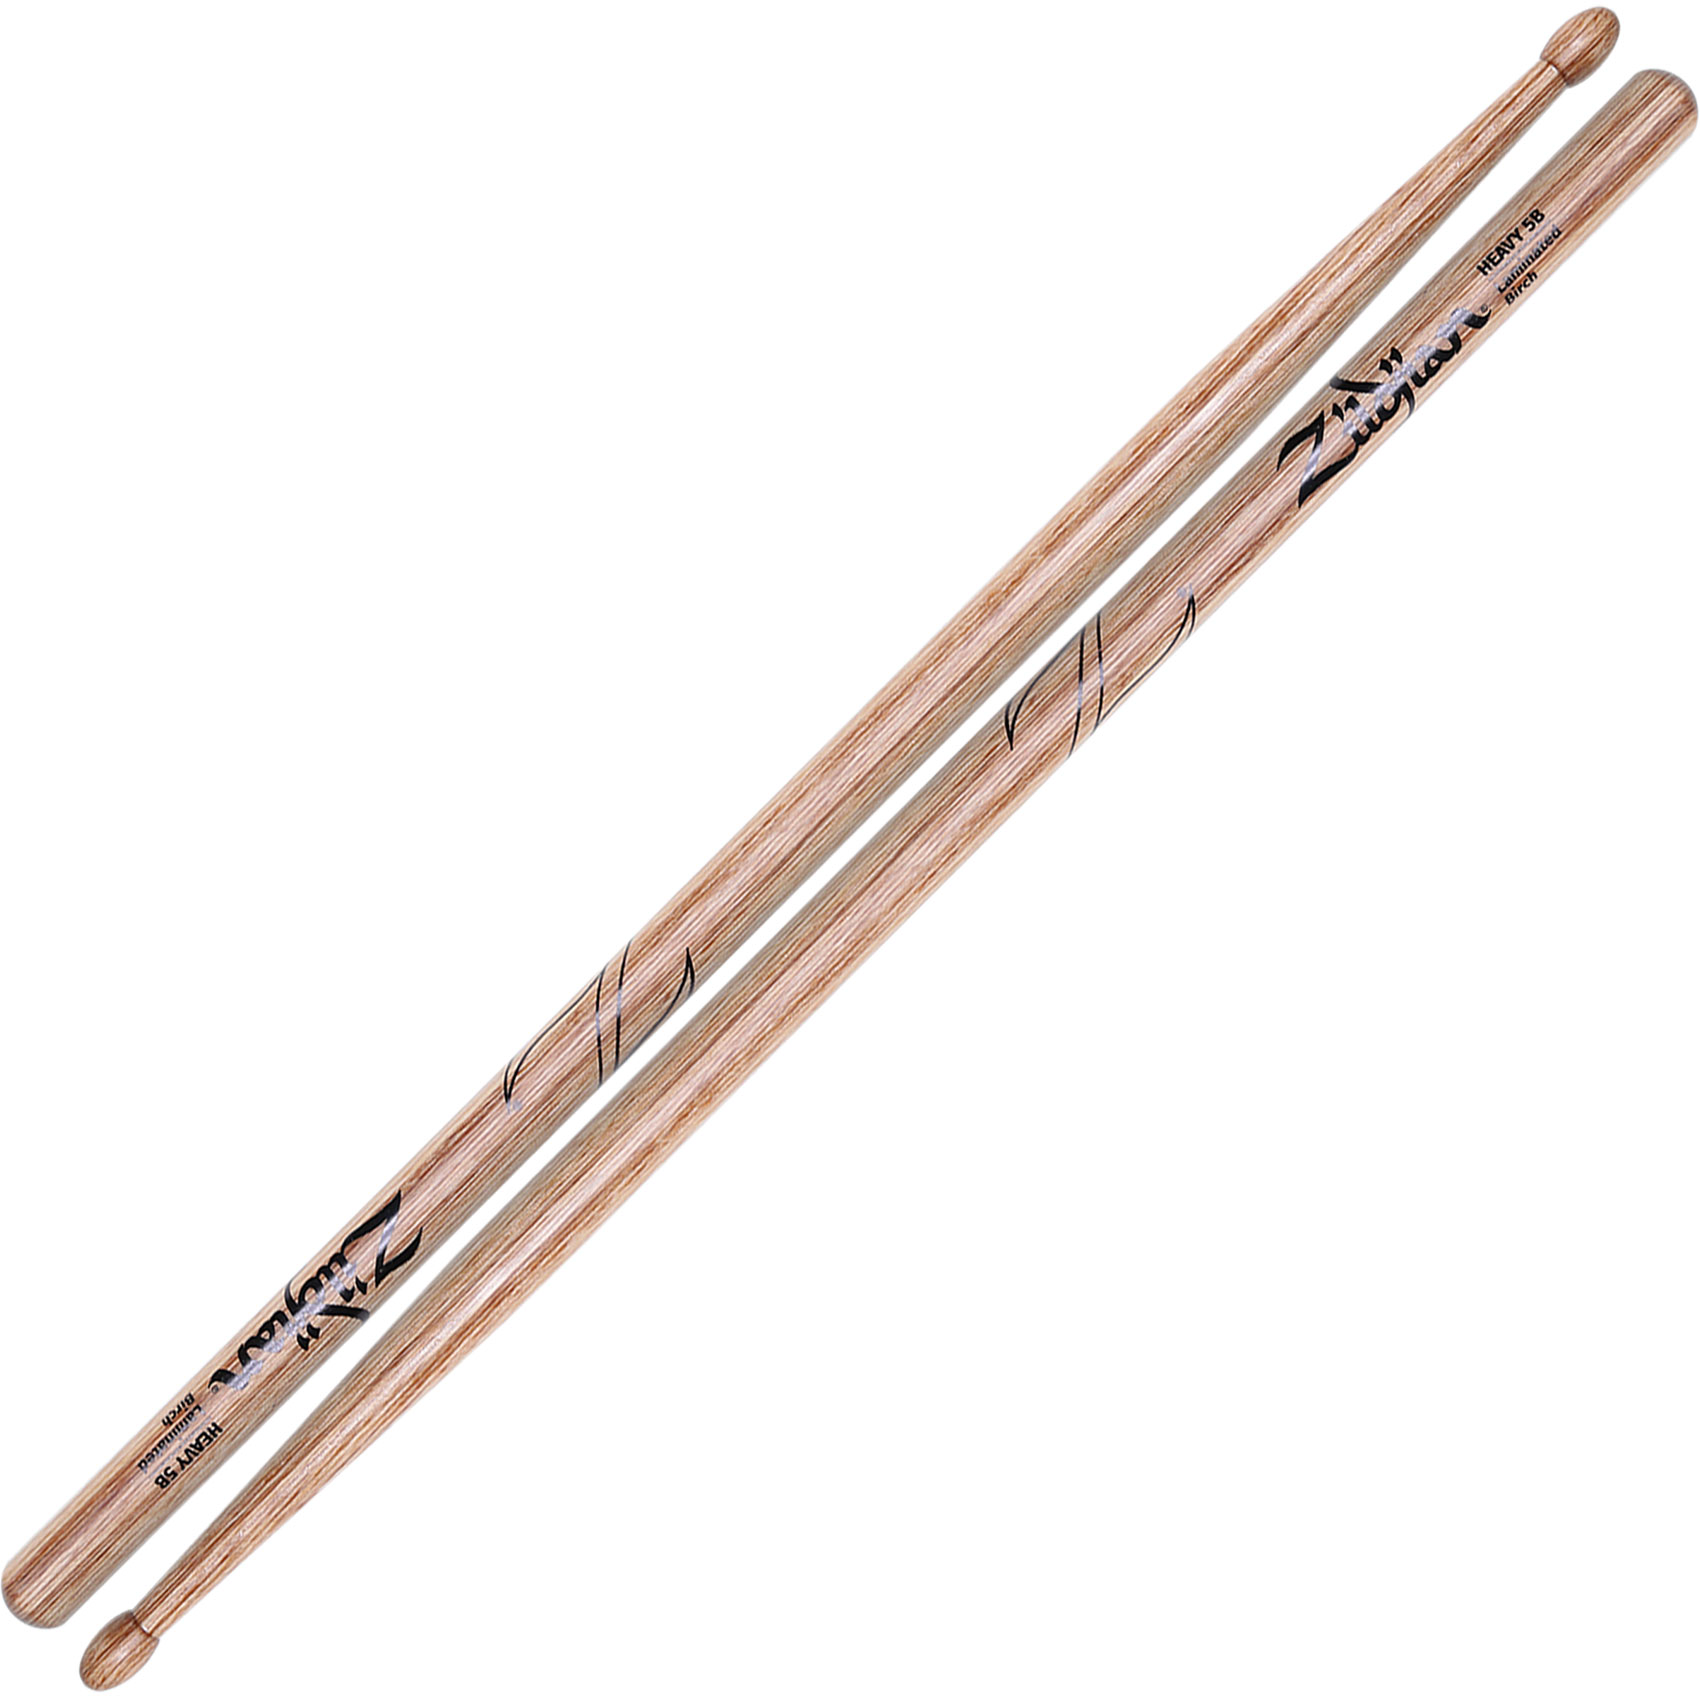 Zildjian Heavy 5B Laminated Birch Drumsticks